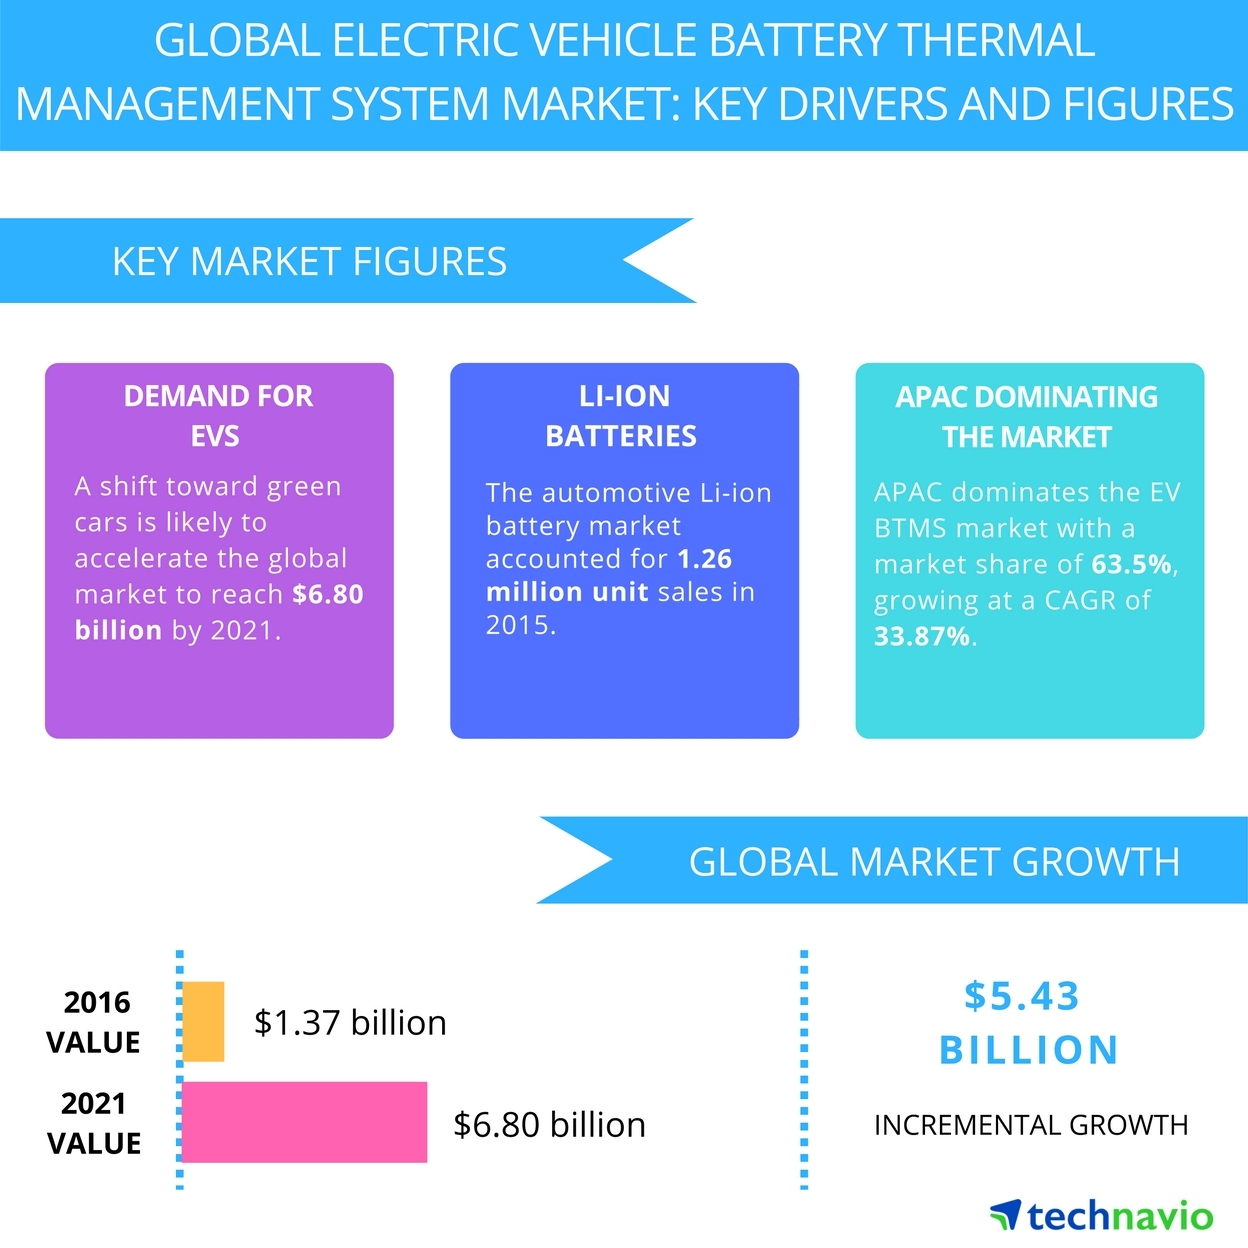 Top 3 Trends Impacting the Global Electric Vehicle Battery Thermal ...